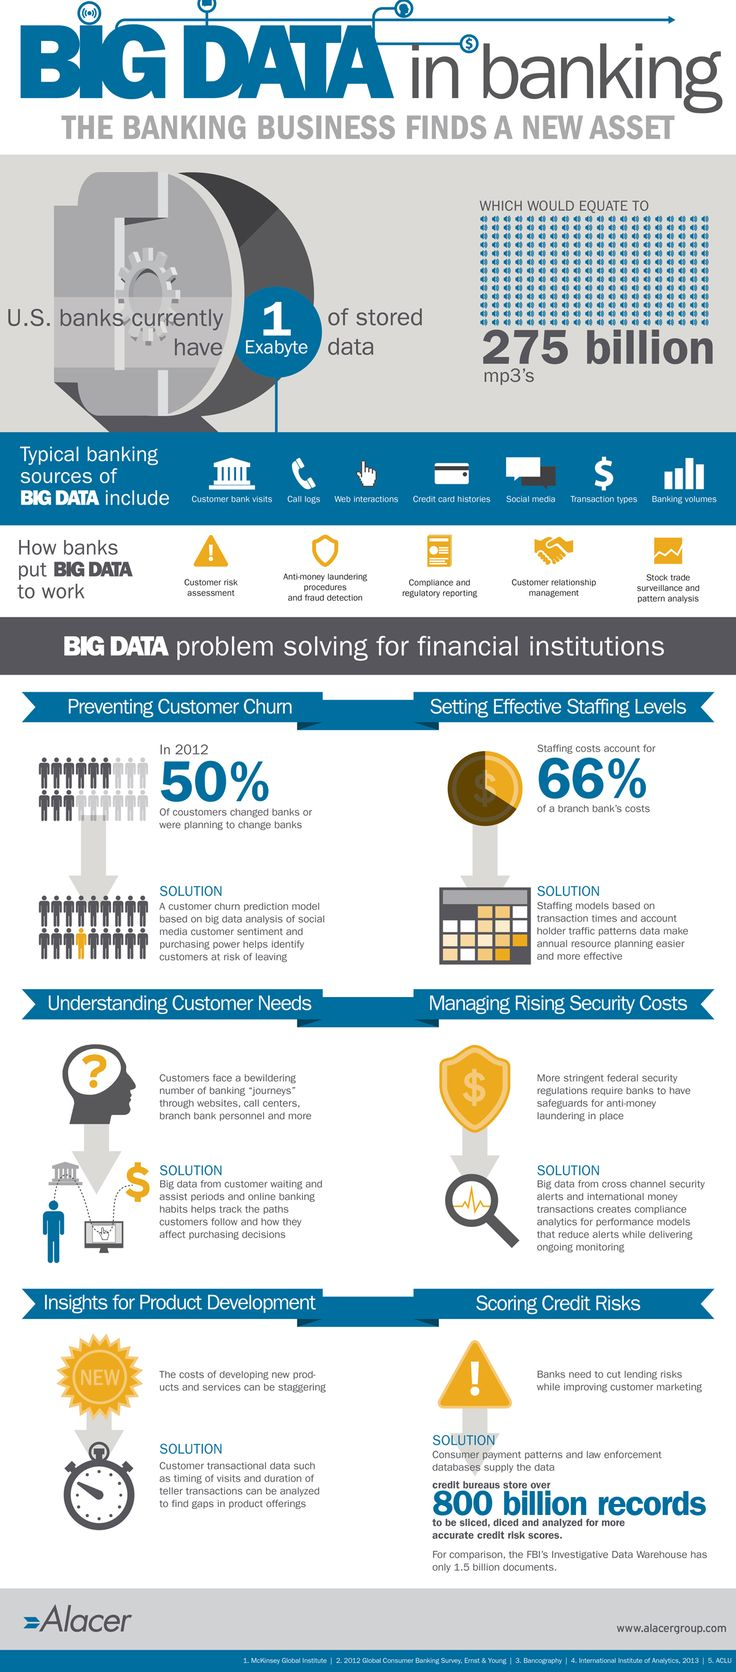 2013/Aug/09 - Big Data is Big Business in Banking